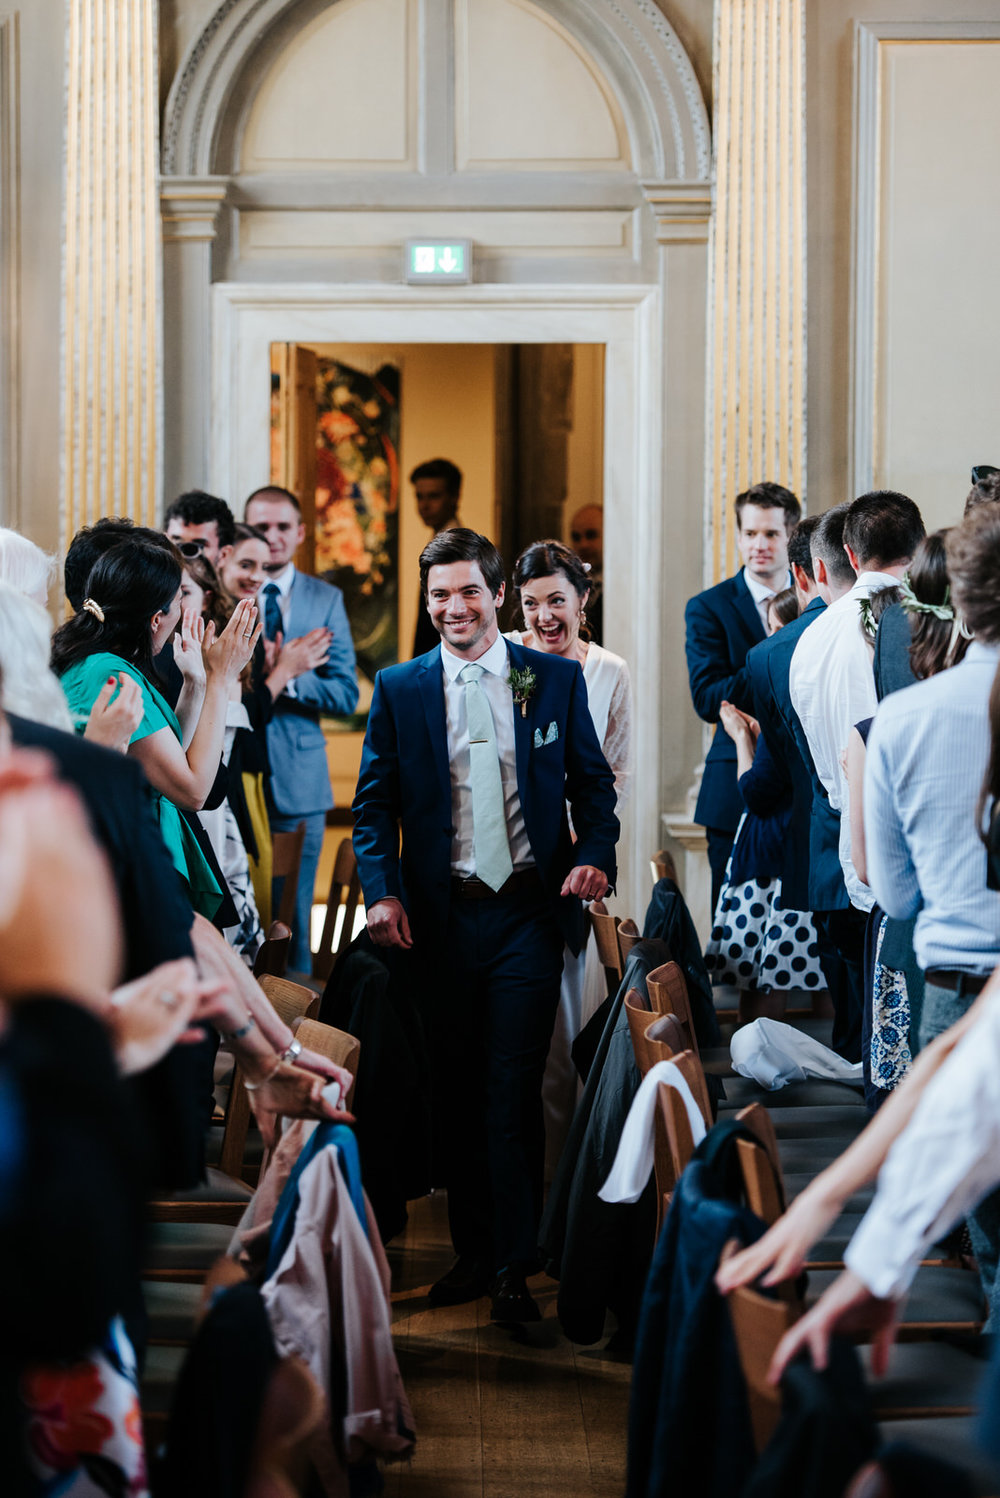 Bride and groom make their grand entrance into Jesus College Din